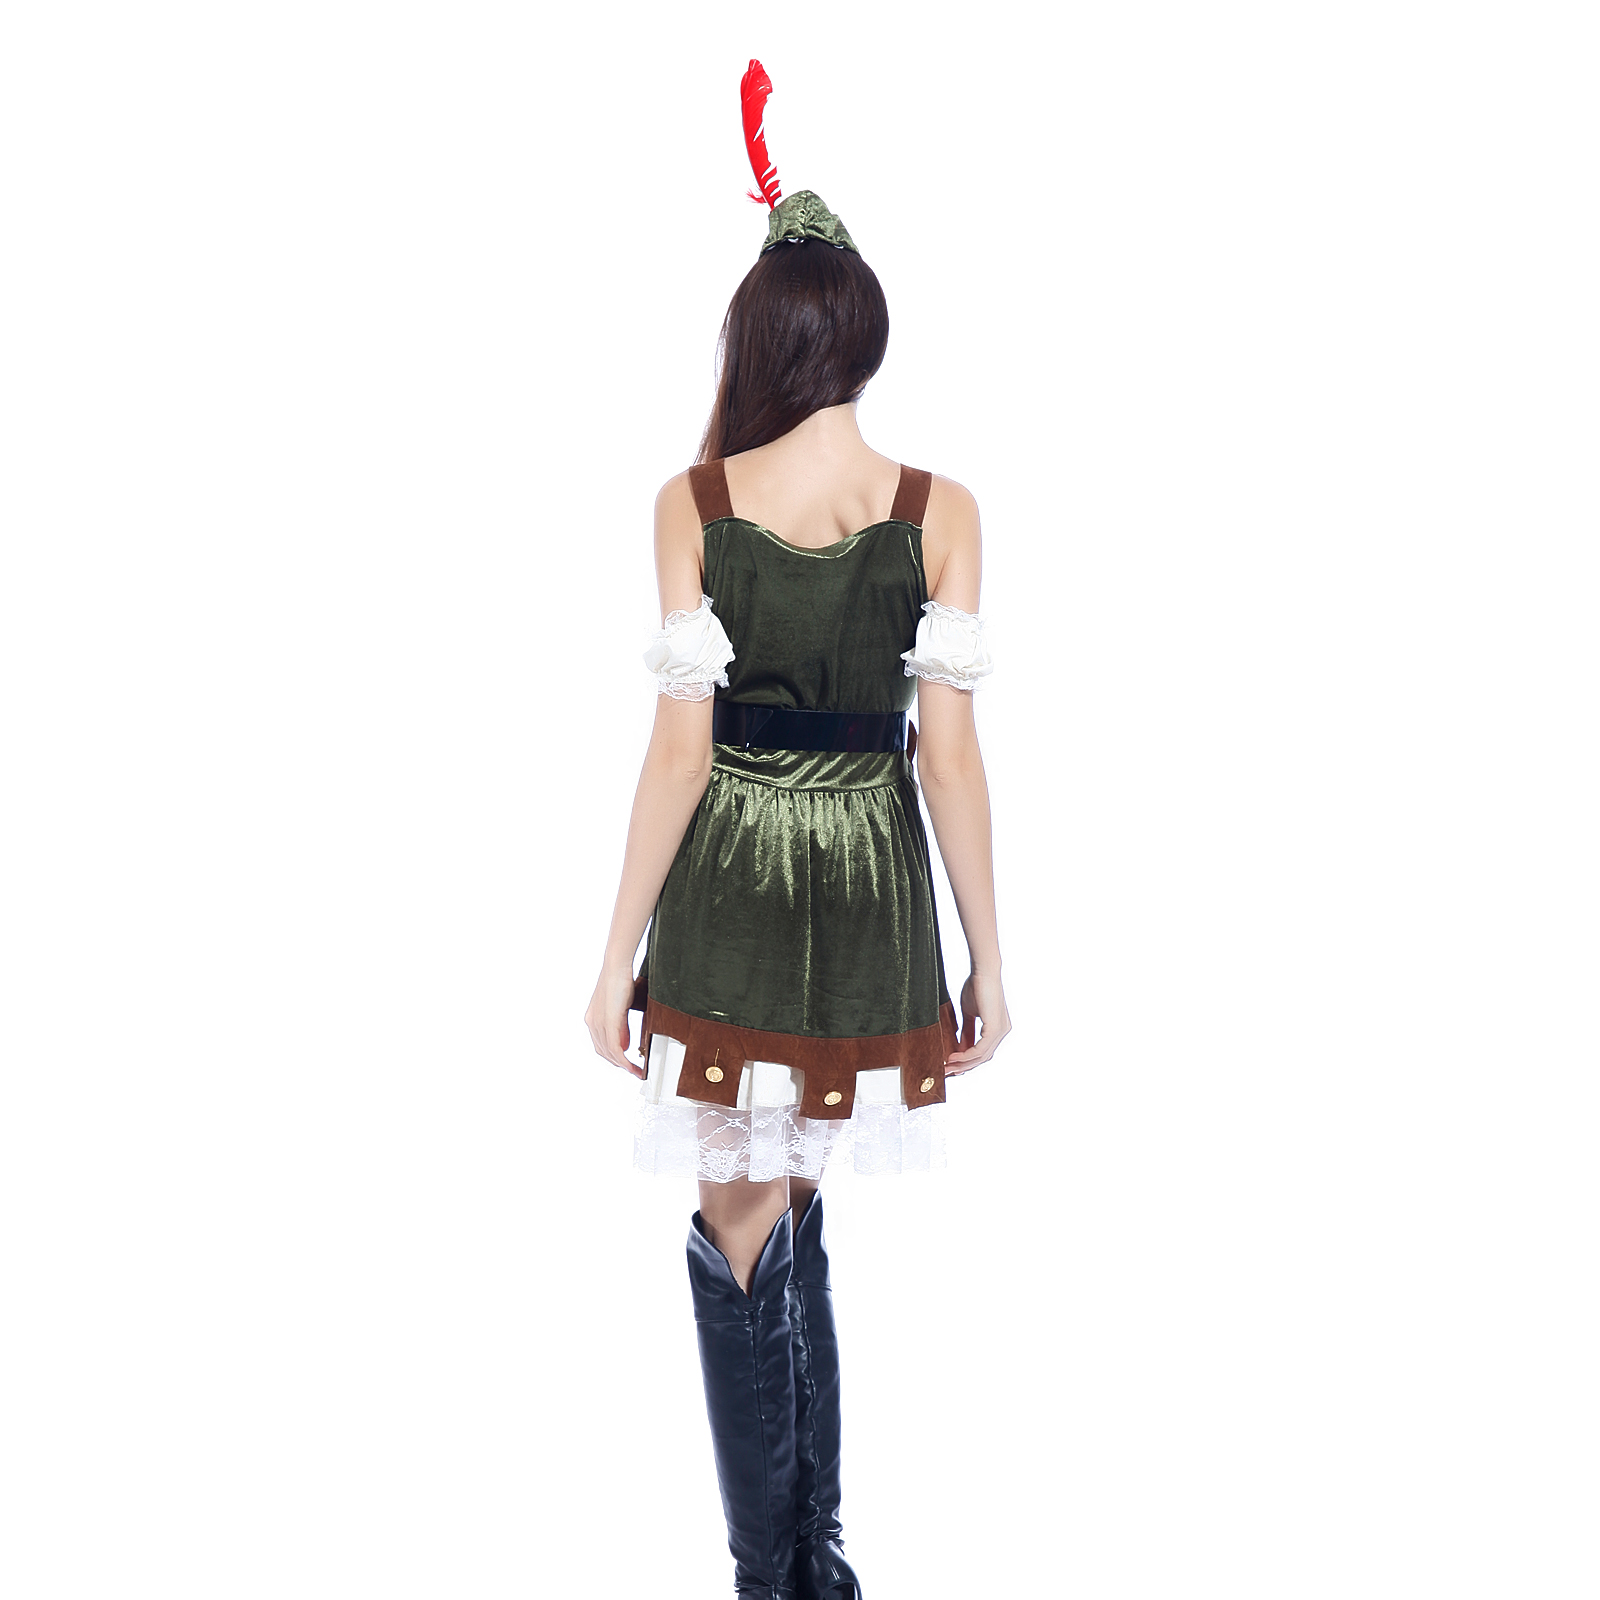 sc 1 th 225 & Racy Robin Hood Adult Costume This